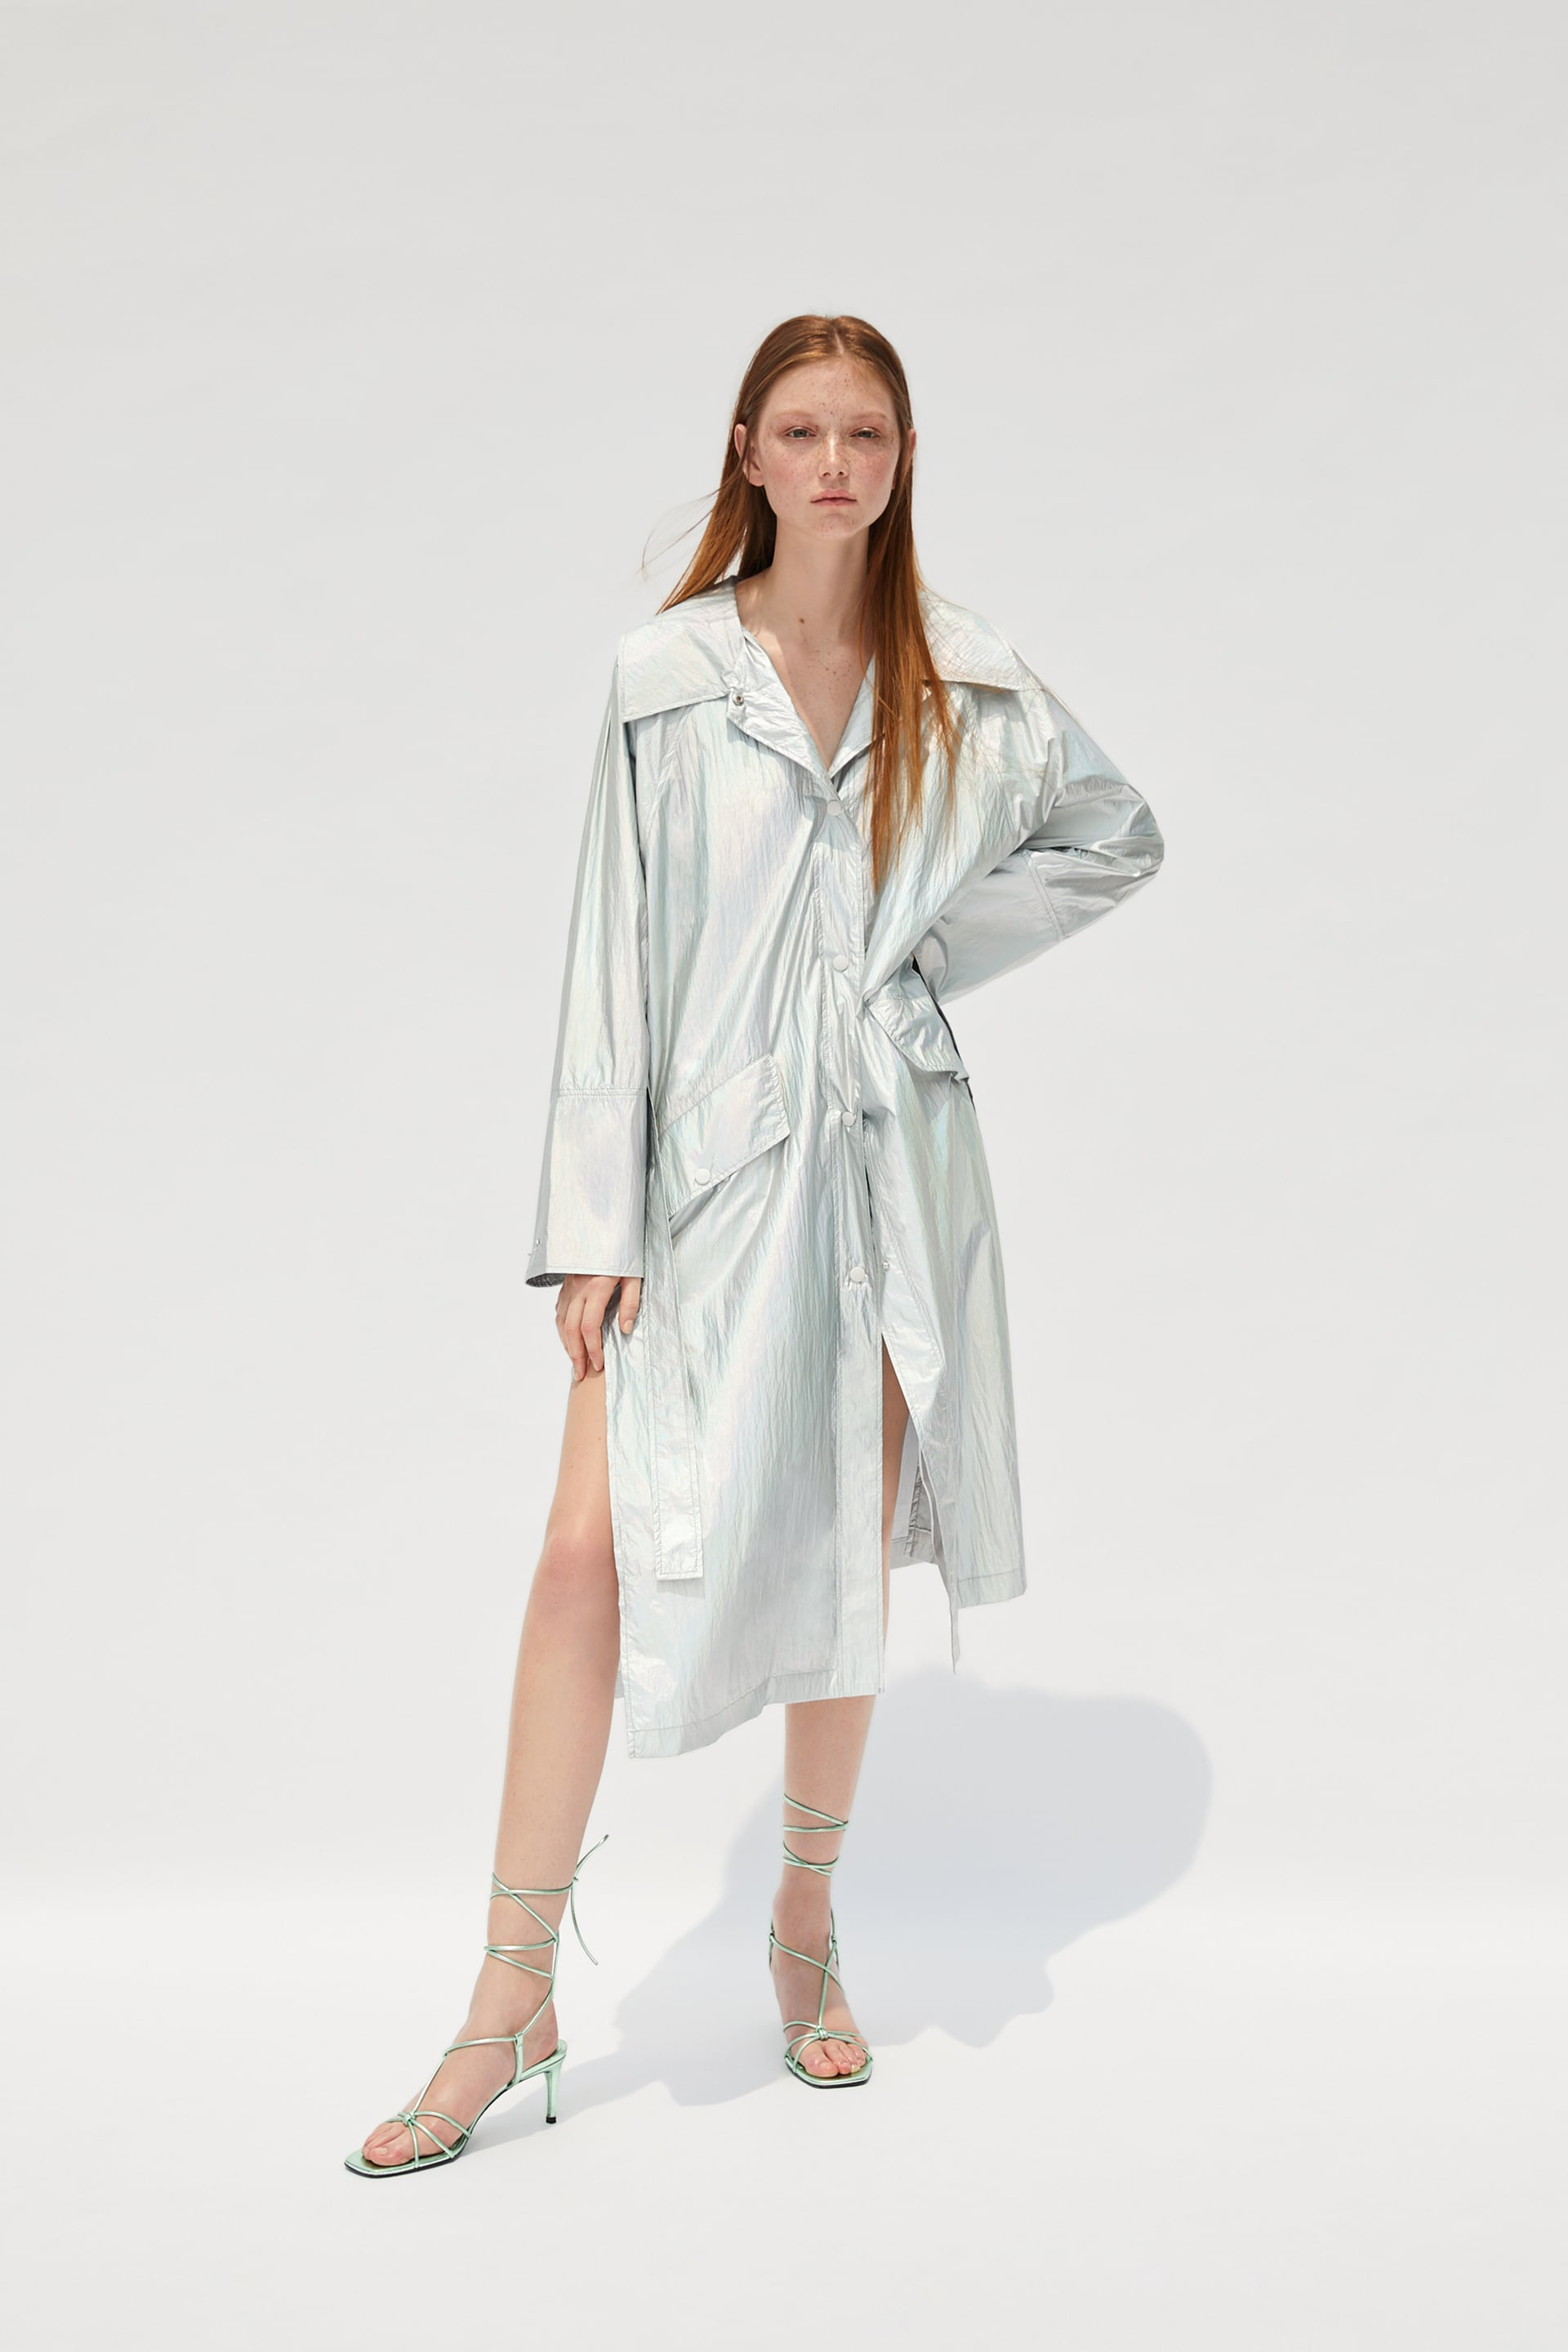 Limited edition metallic trench coat | My Style in 2019